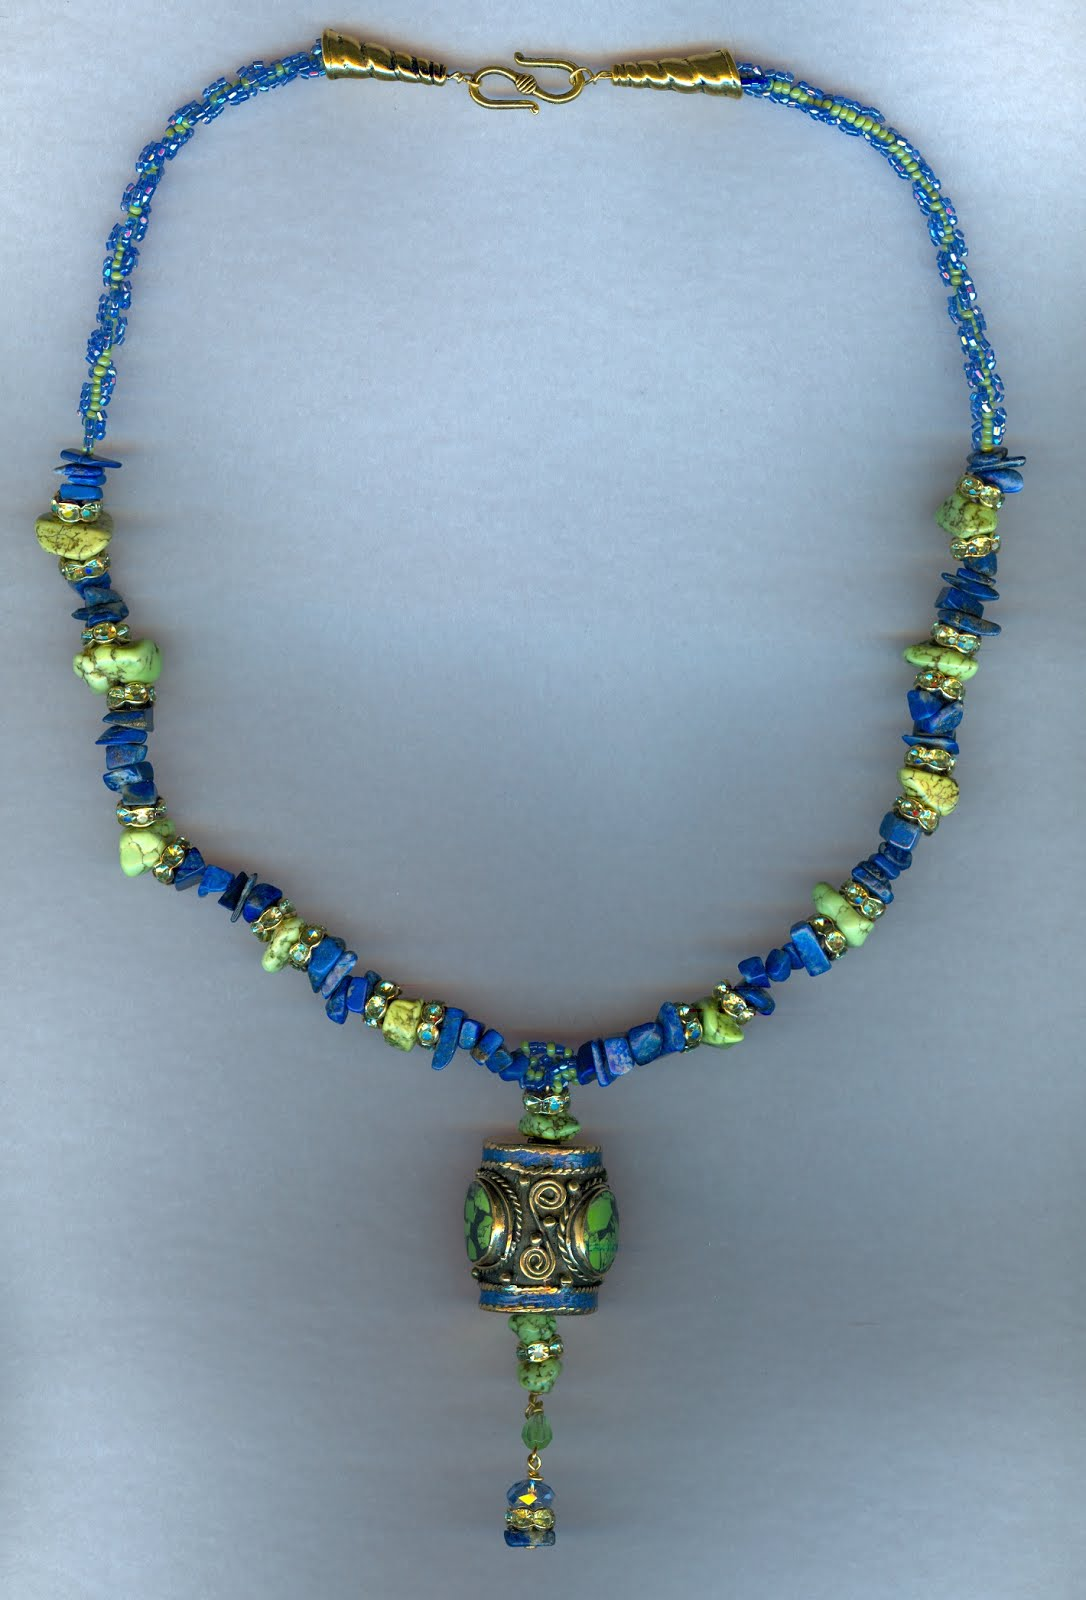 Turquoise and Lapis necklace with Nepali bead